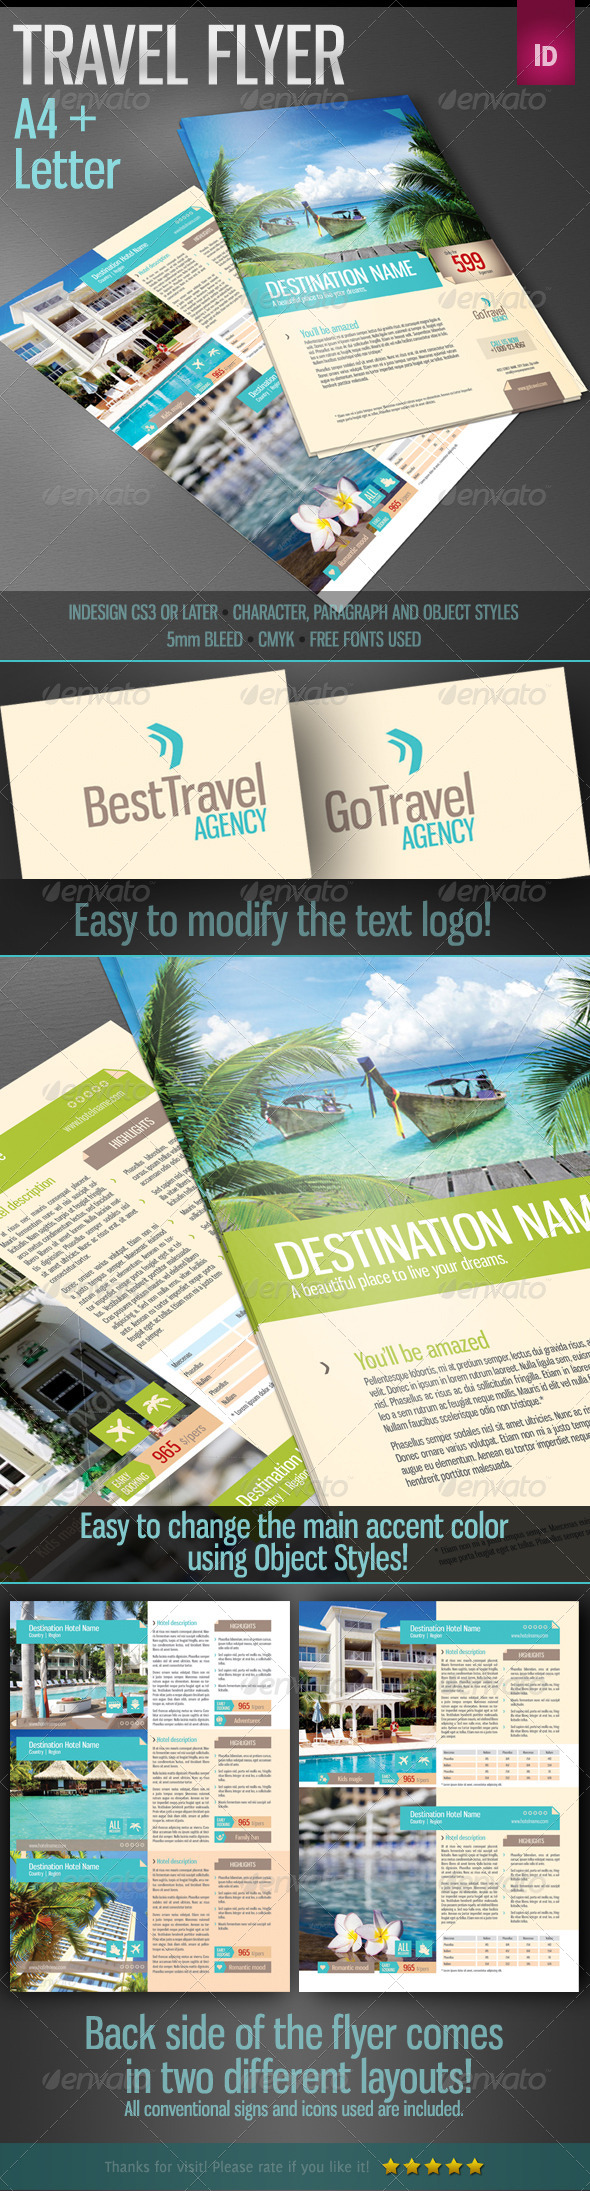 GraphicRiver Travel Flyer 4063199